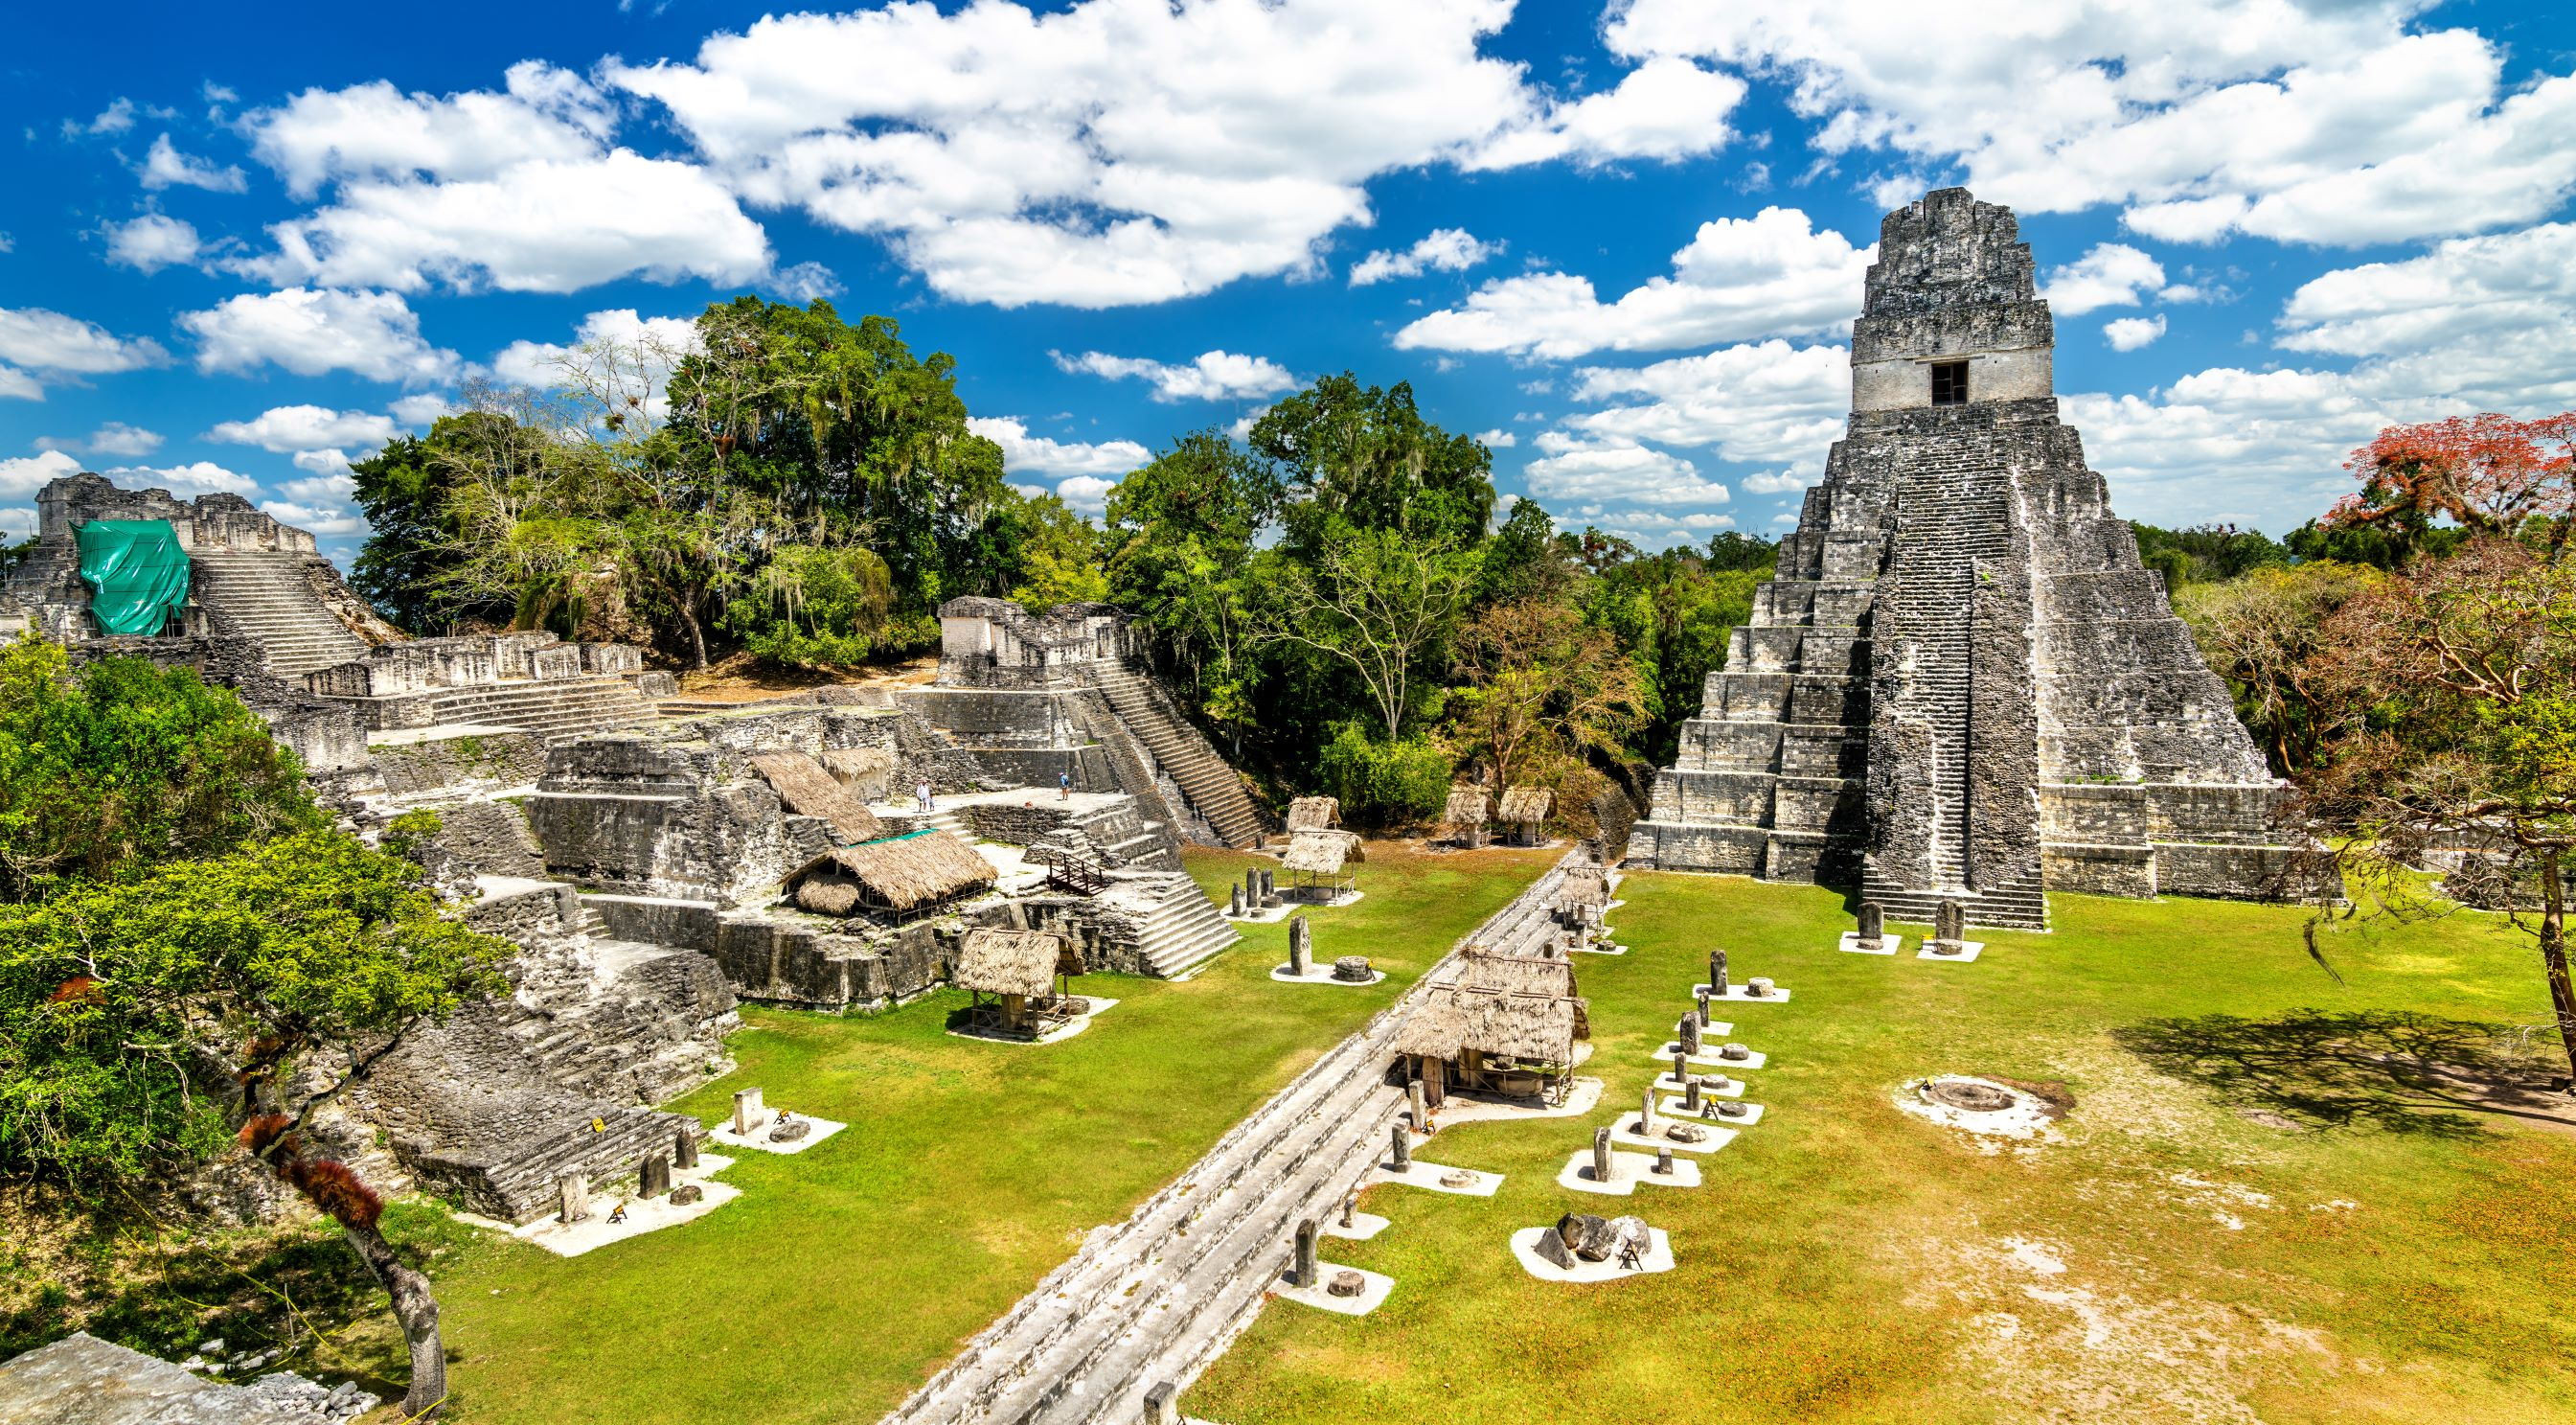 Temple of the Great Jaguar at Tikal in Guatemala